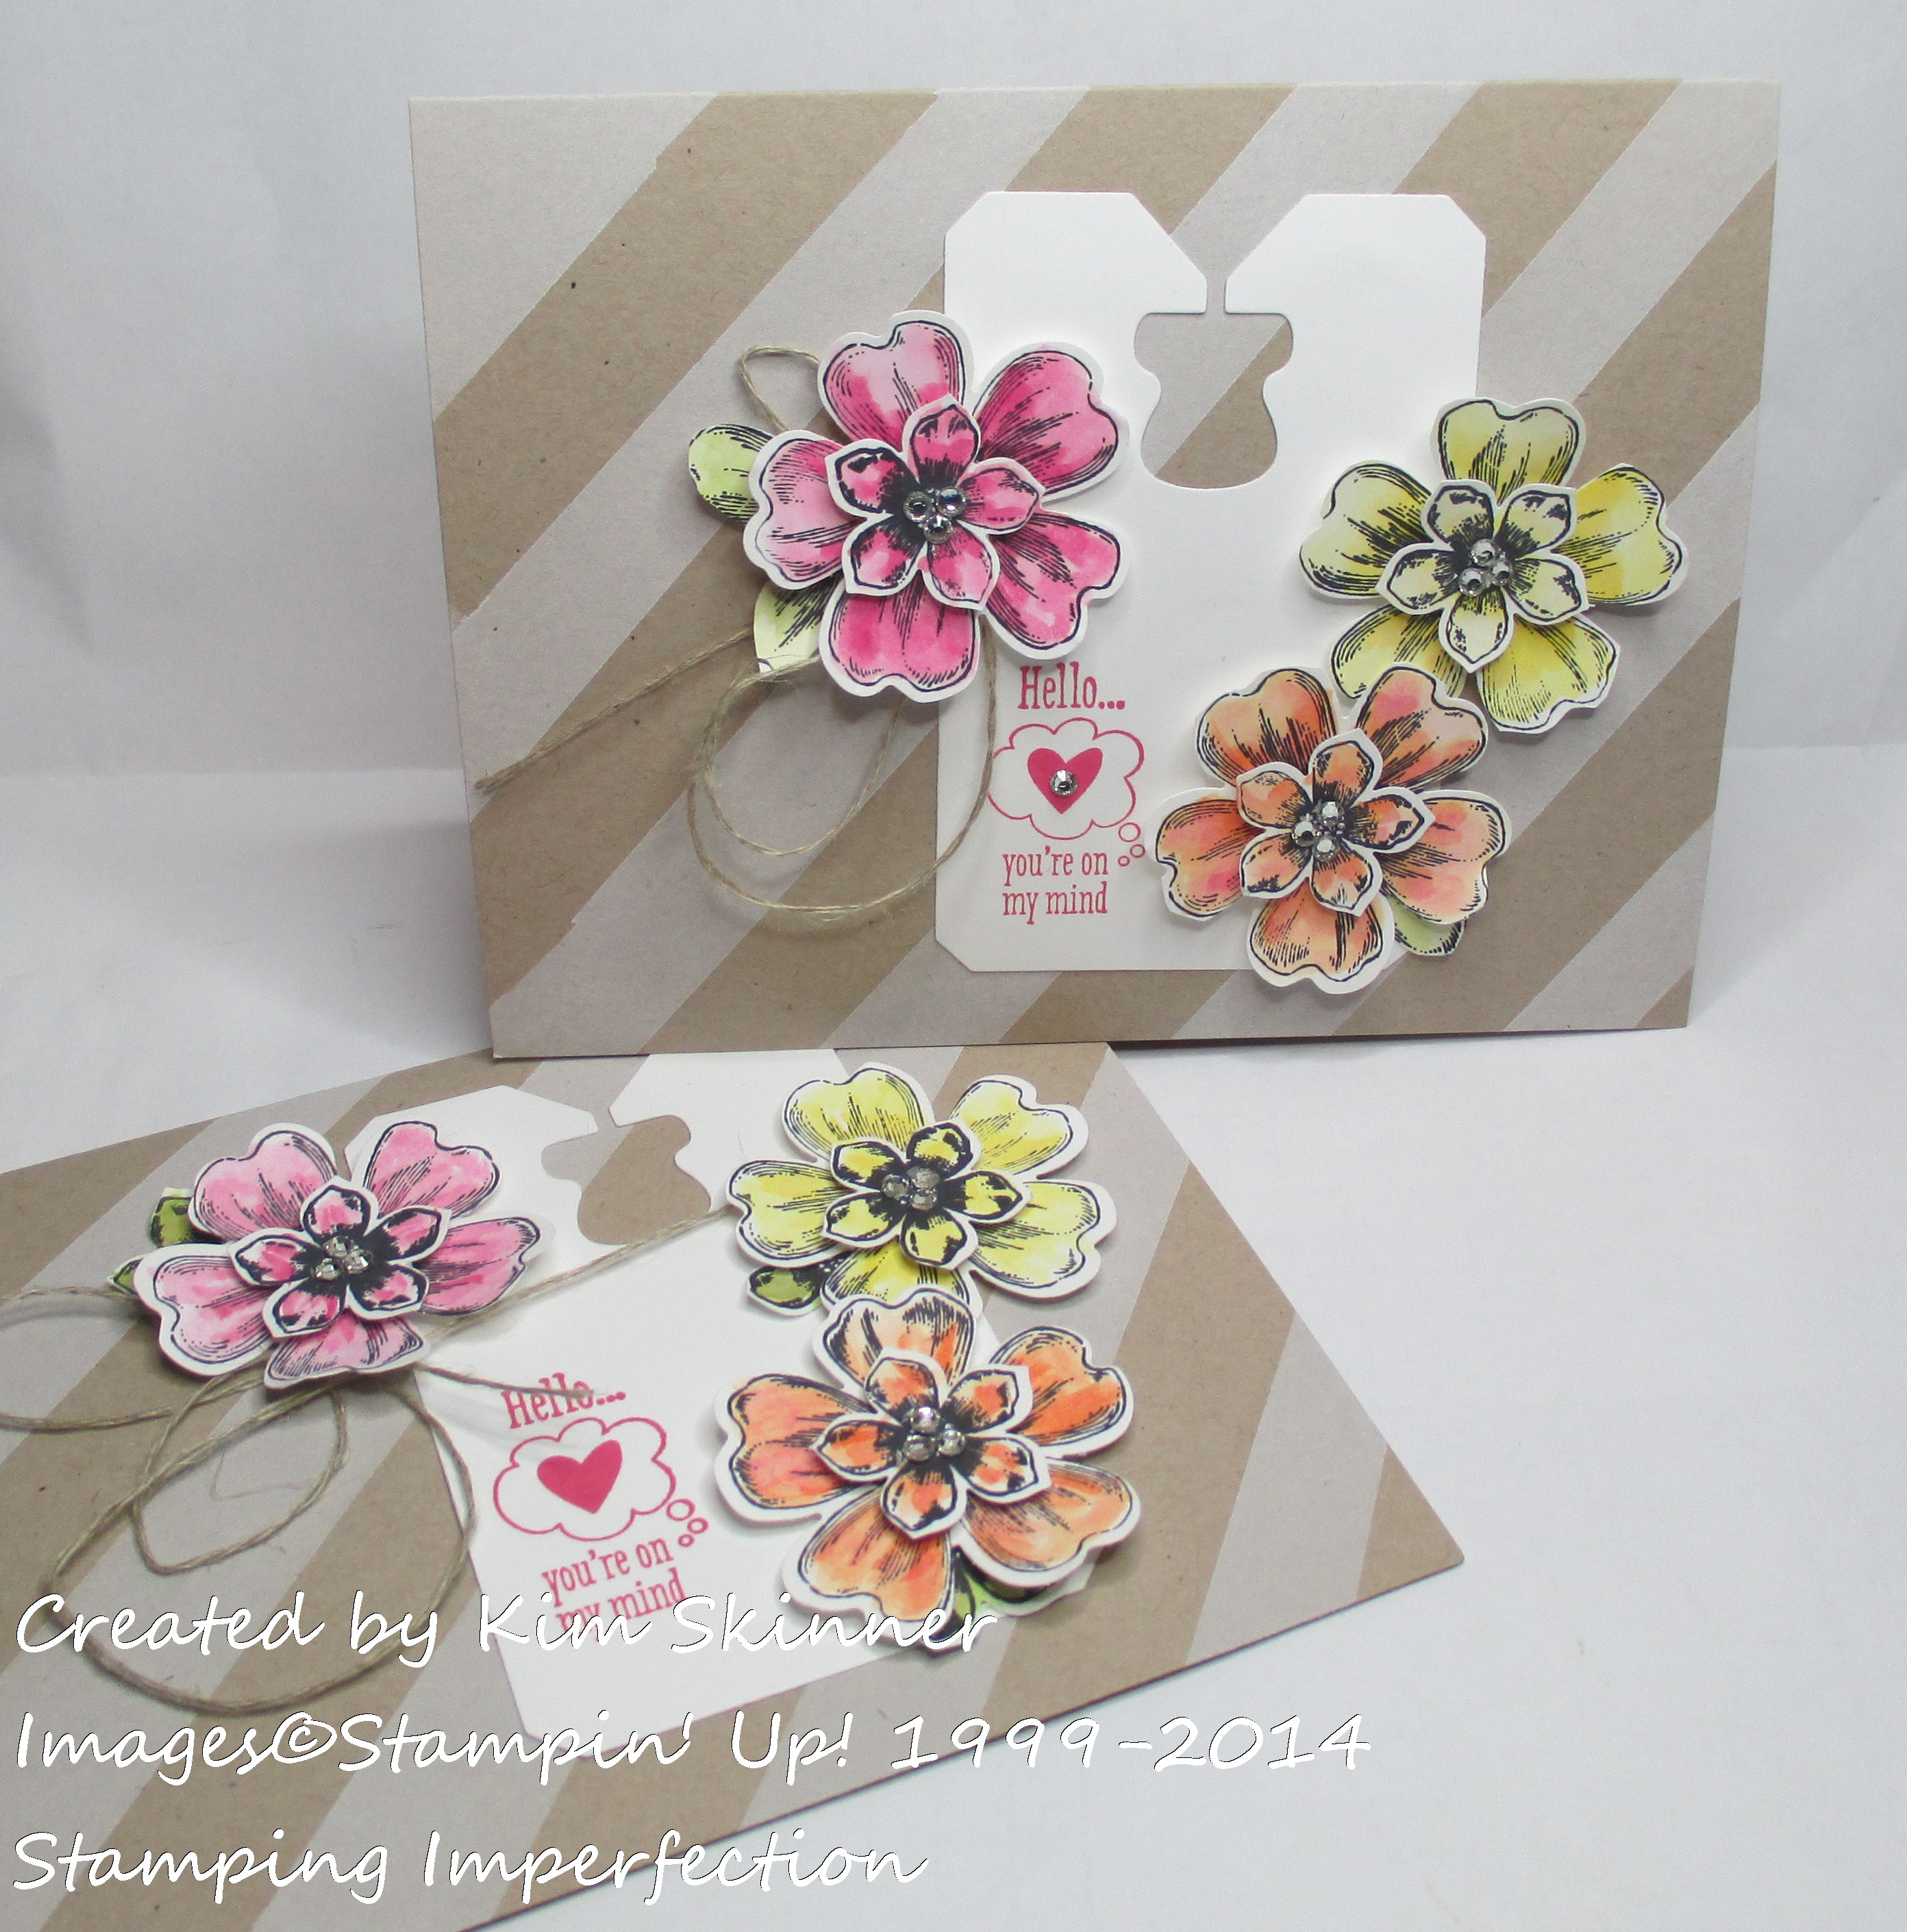 Stamping Imperfection Striped Background